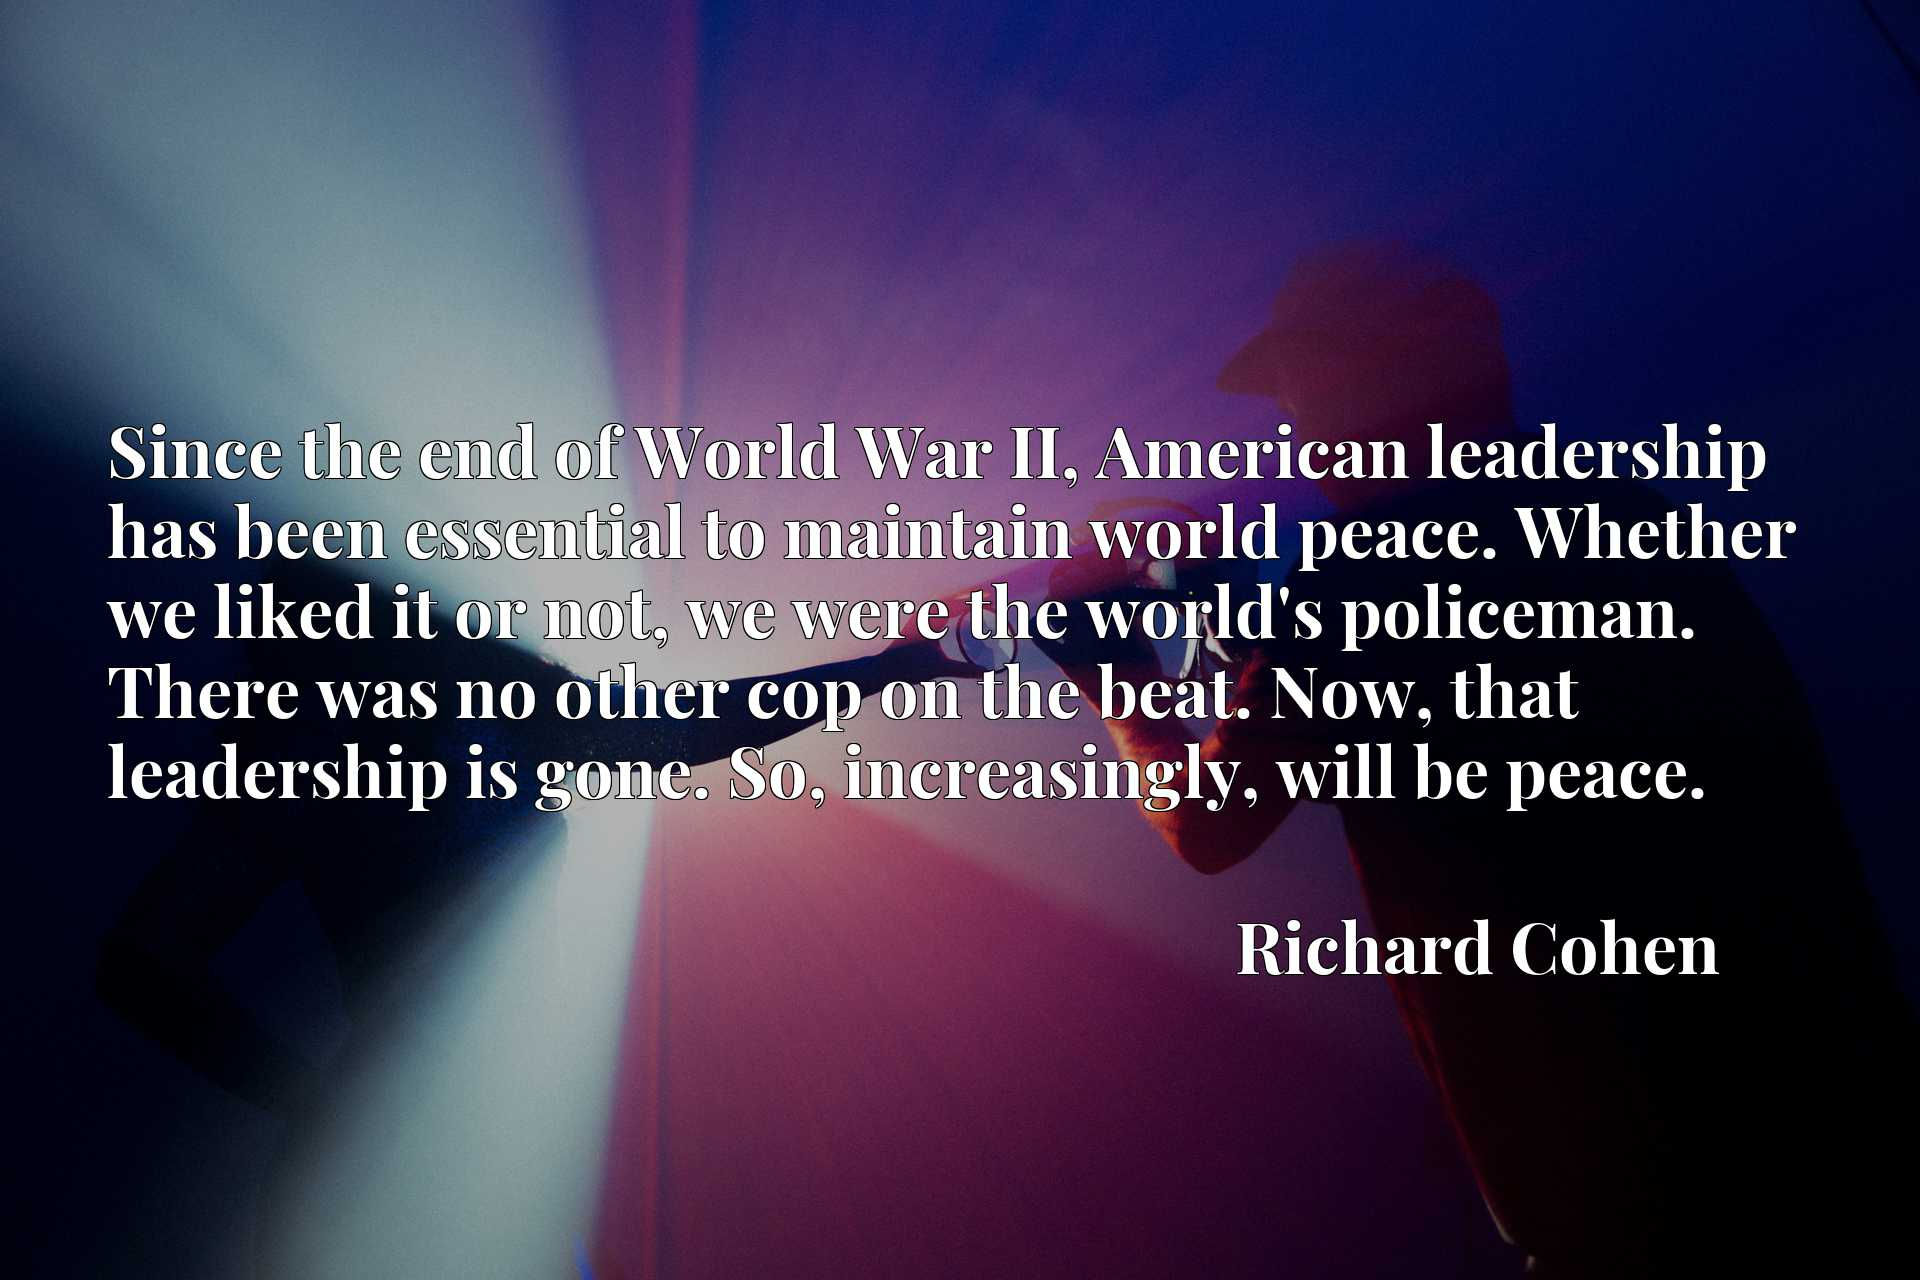 Since the end of World War II, American leadership has been essential to maintain world peace. Whether we liked it or not, we were the world's policeman. There was no other cop on the beat. Now, that leadership is gone. So, increasingly, will be peace.